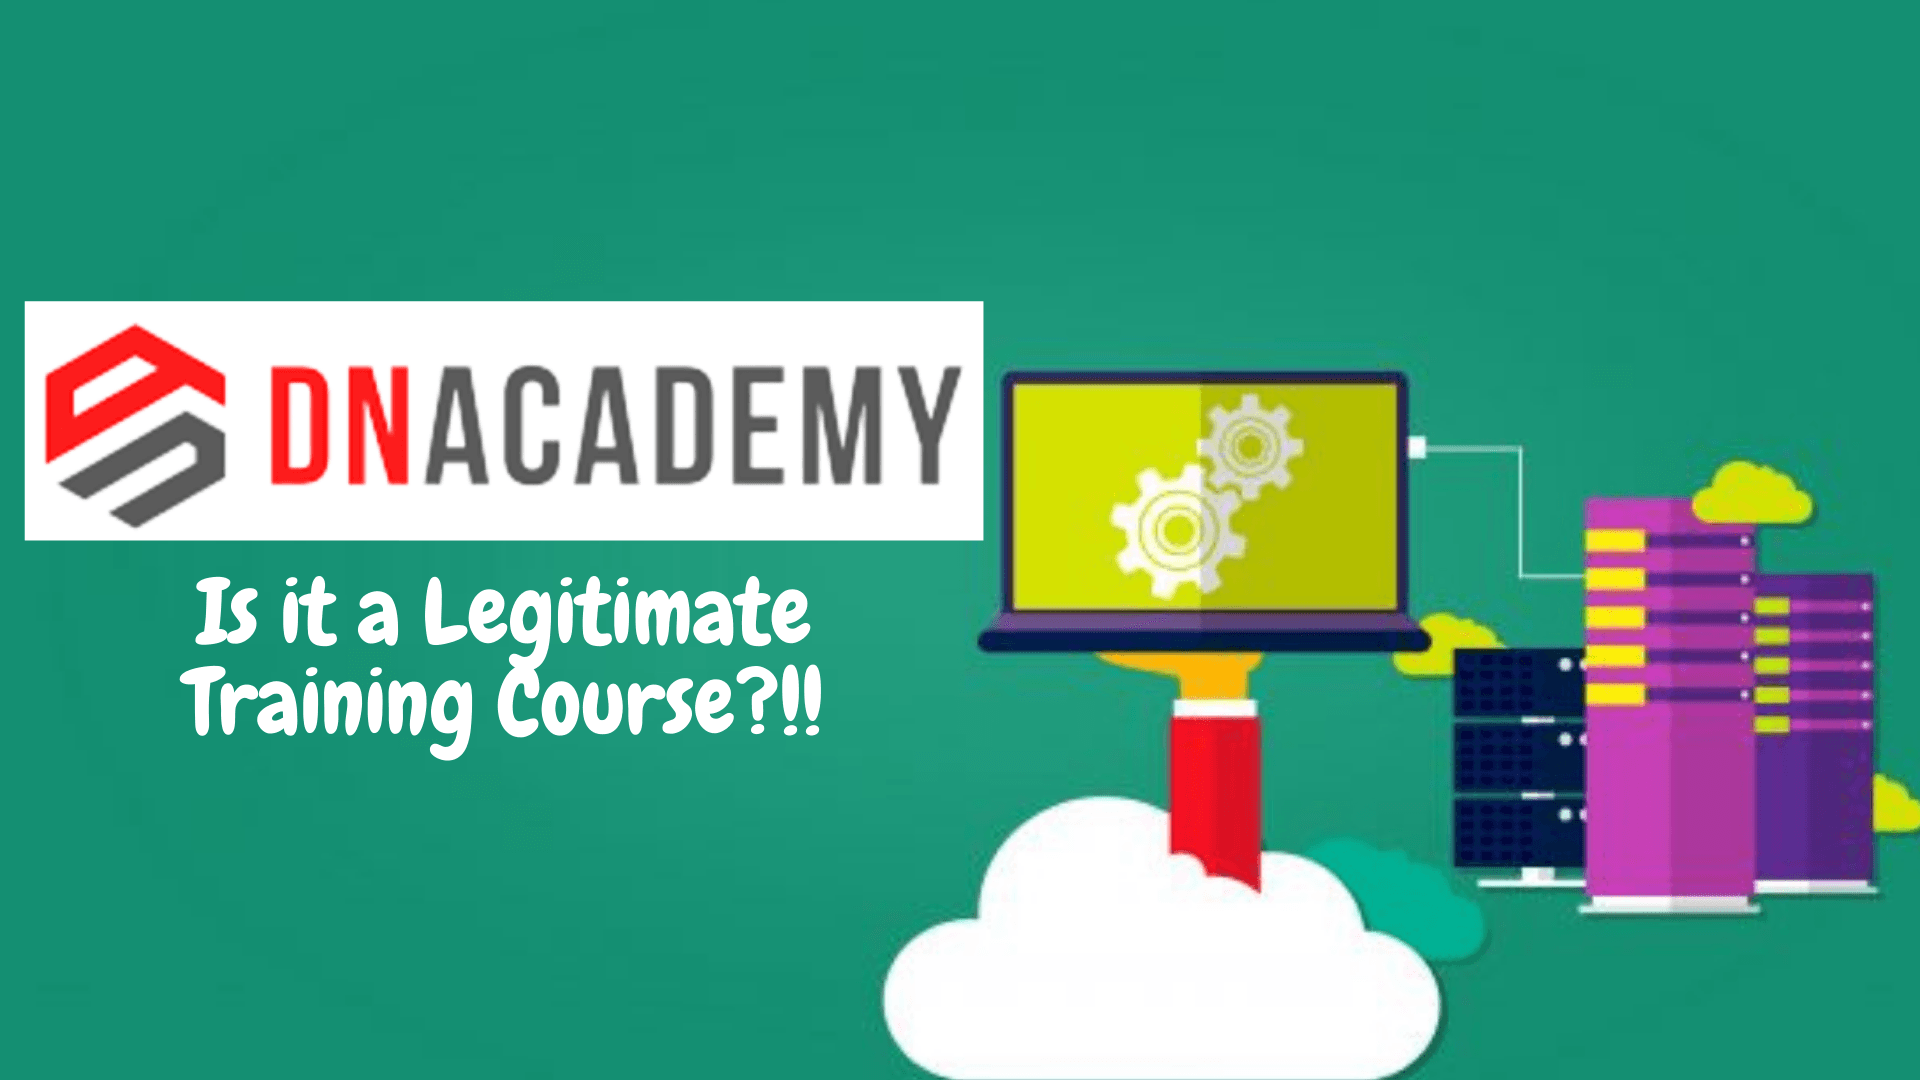 DNAcademy Frontpage